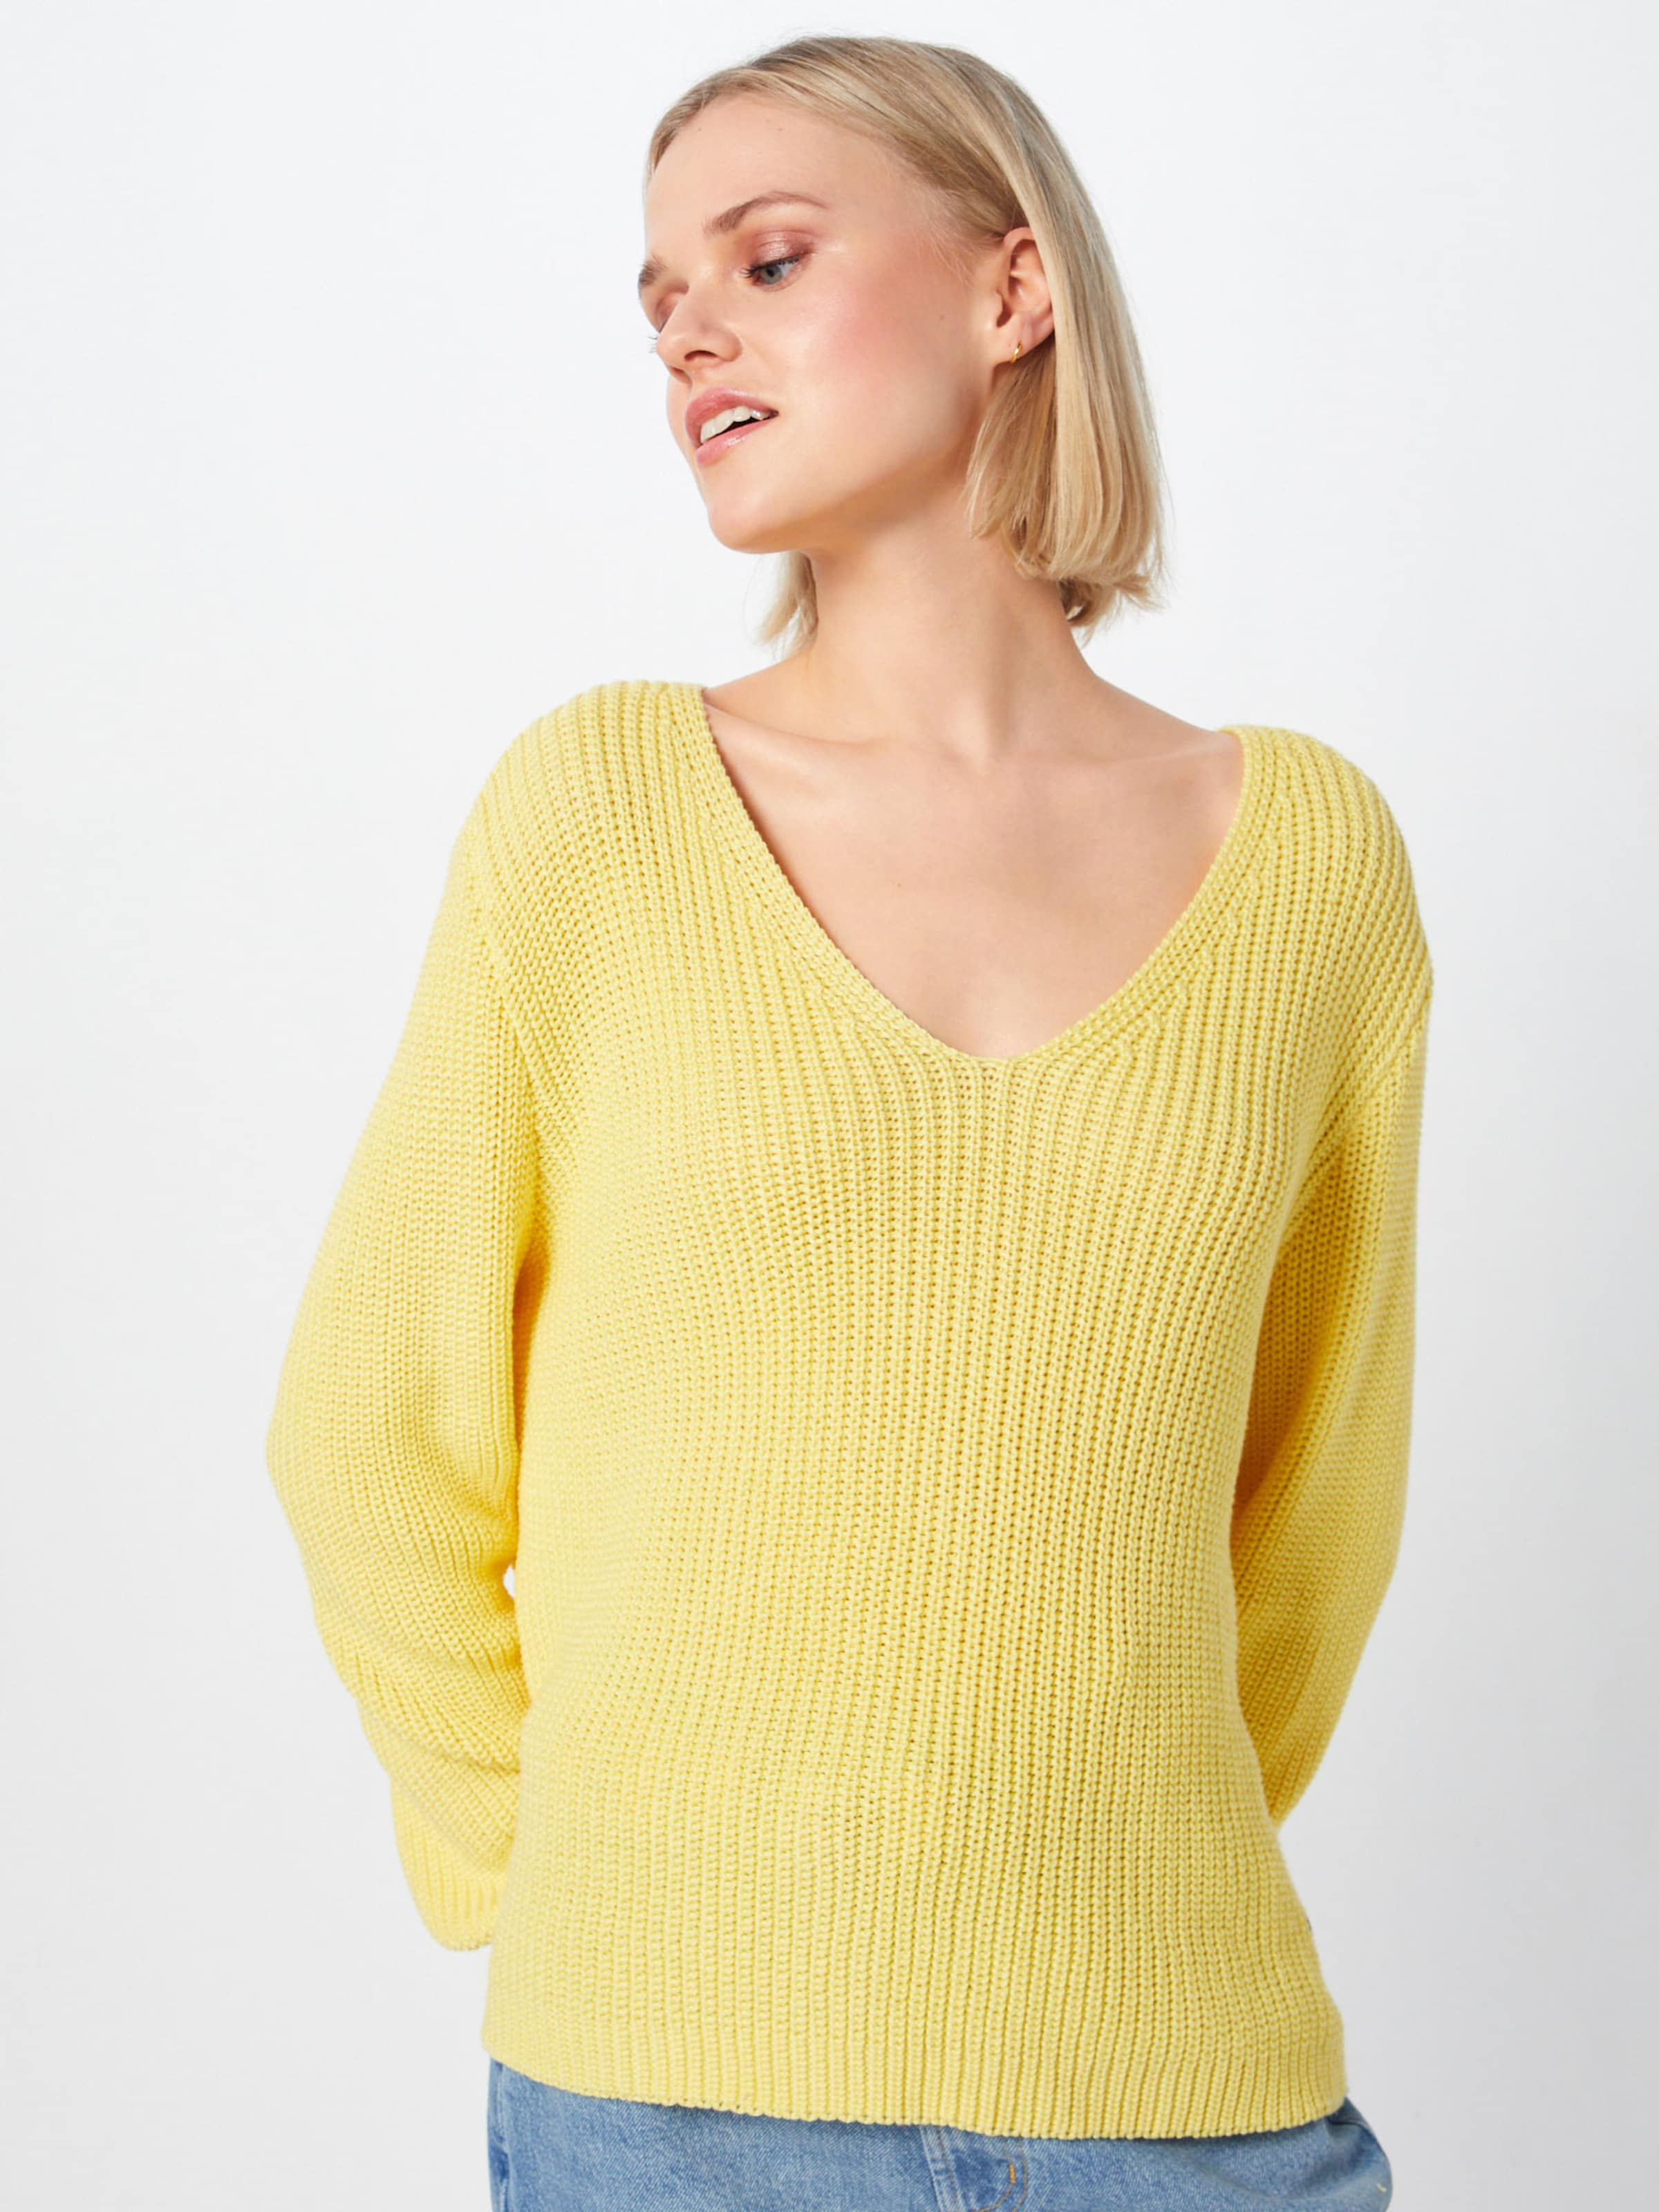 Lena Gercke 'ella' Pullover In By Leger Gelb zSVqUMp